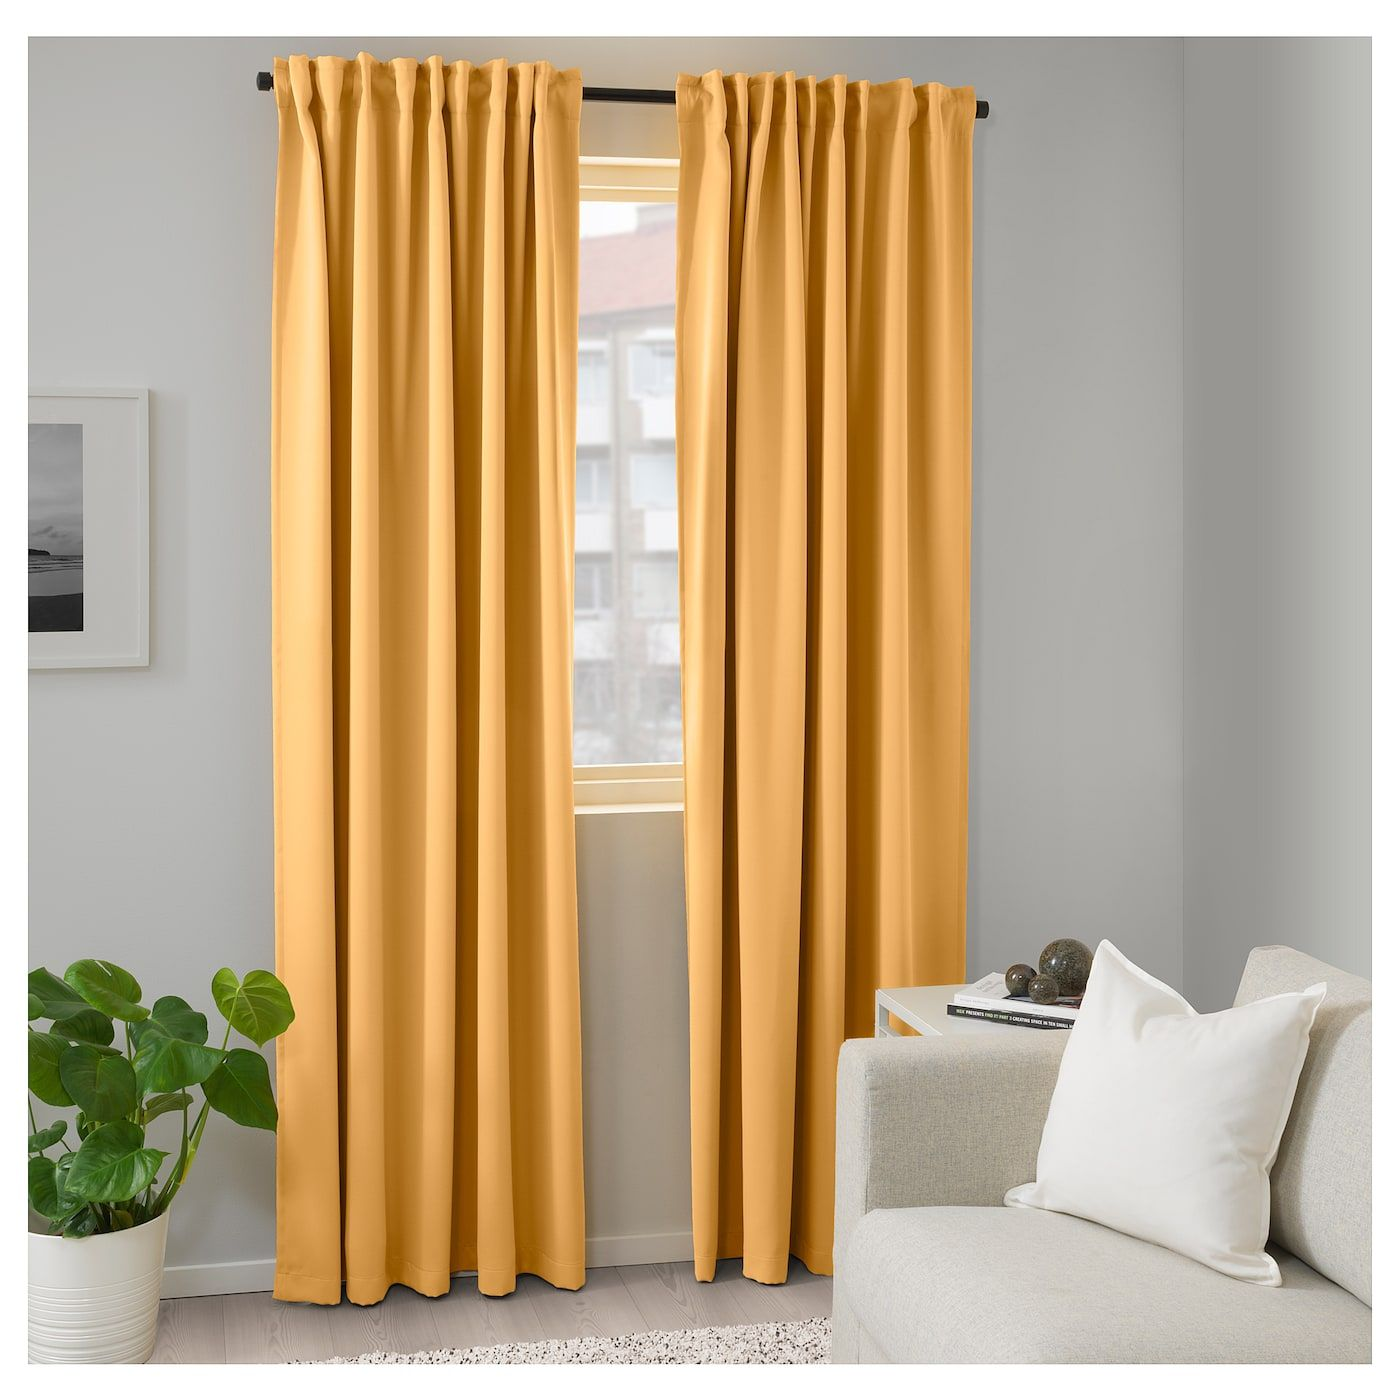 Ikea Vorhänge Majgull Majgull Room Darkening Curtains 1 Pair Yellow In 2019